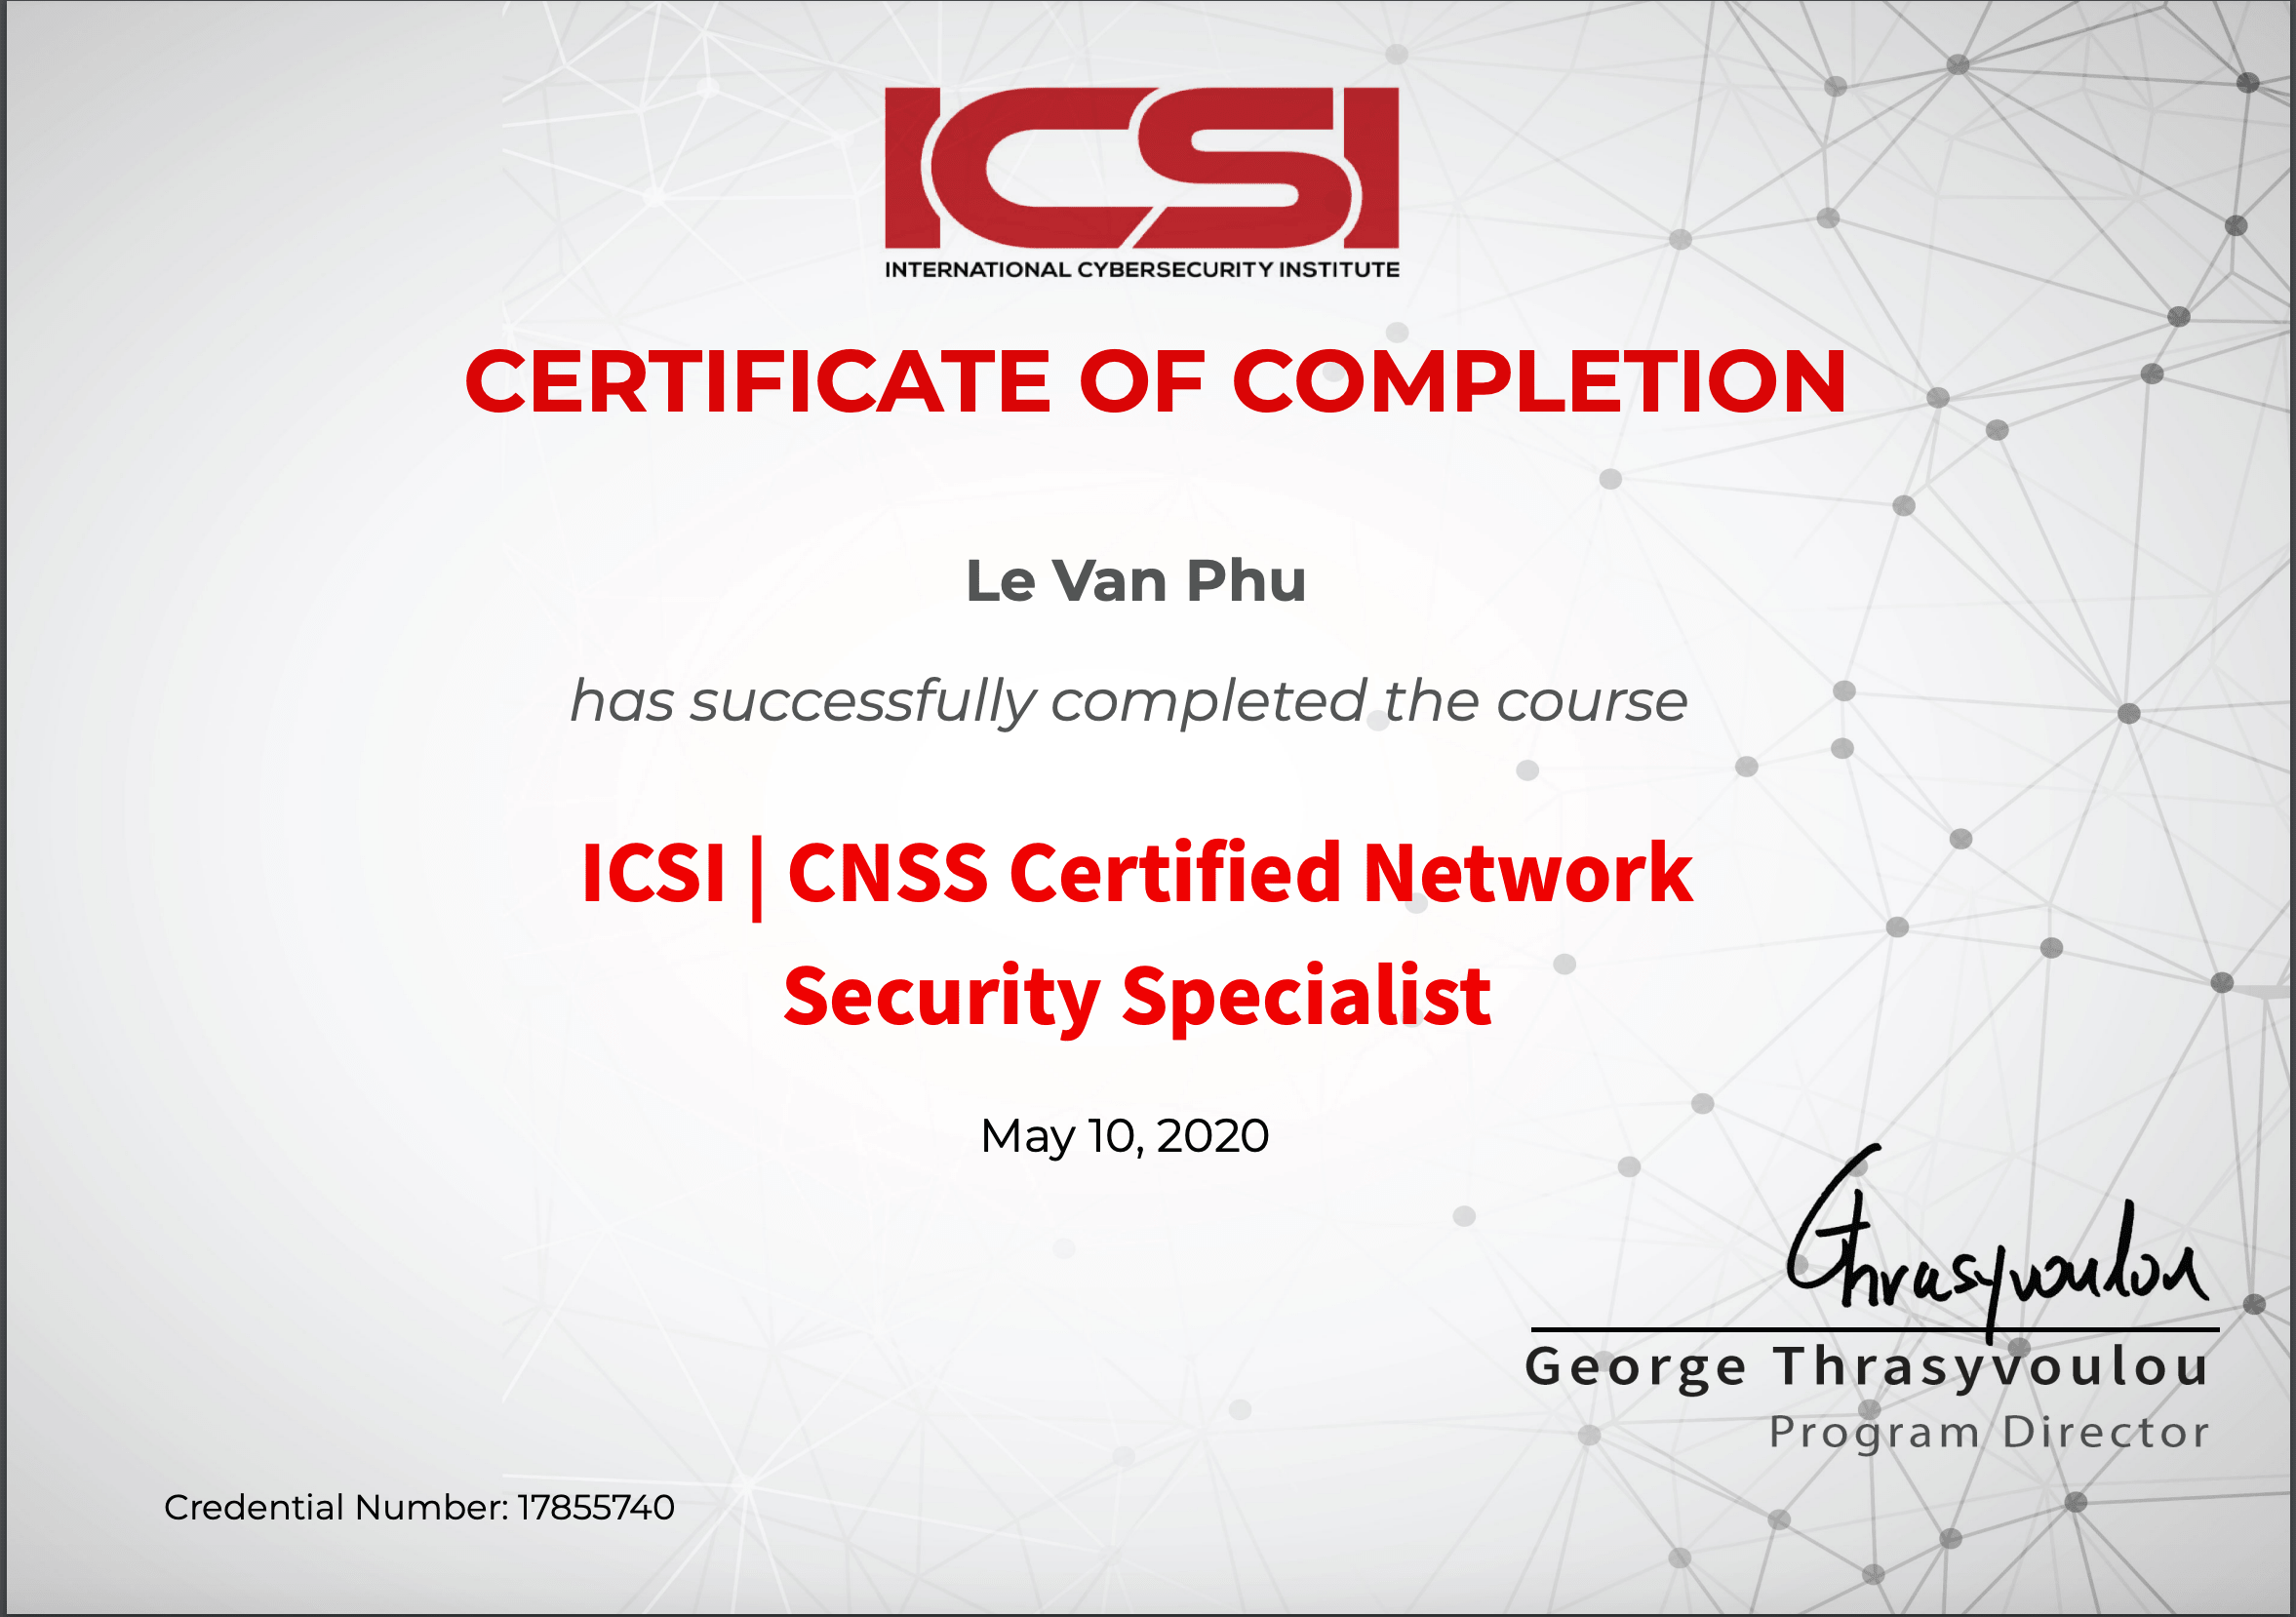 CNSS Certified Network Security Specialist Certificate